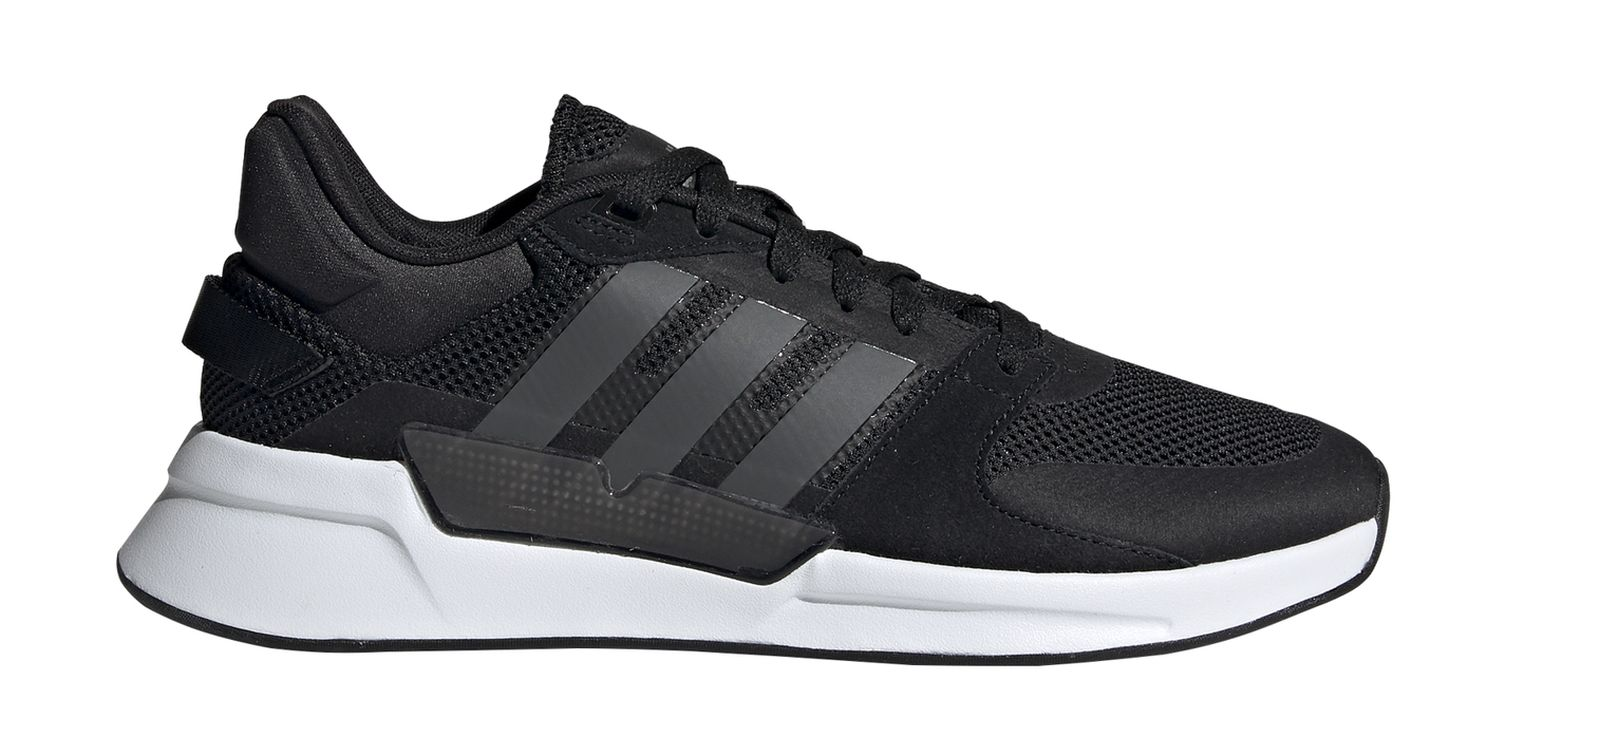 Details about Adidas Performance Men's Leisure Fitness Trainers Shoes RUN90S Black